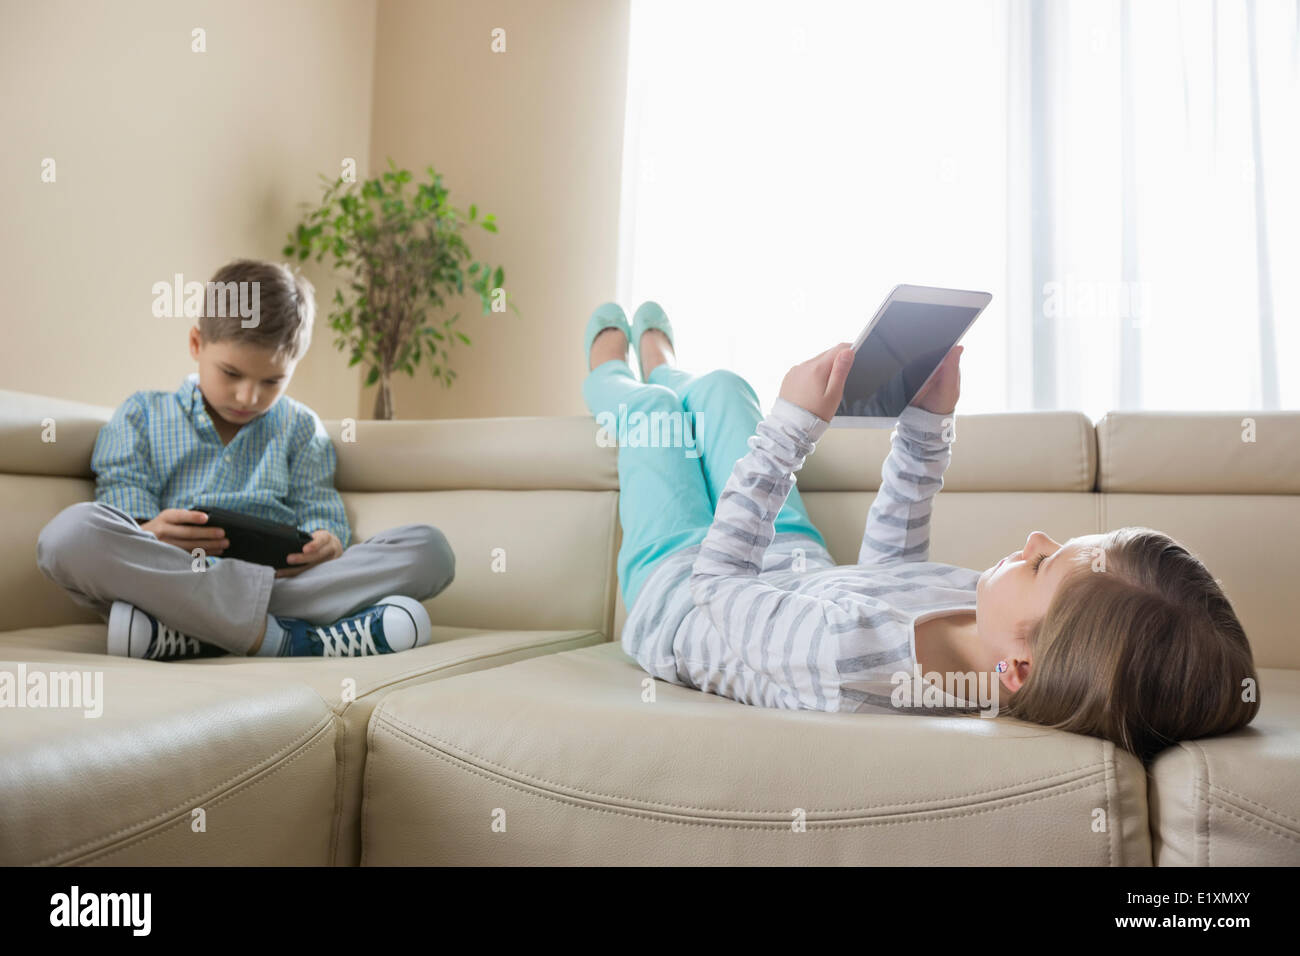 Siblings using technologies on sofa at home - Stock Image